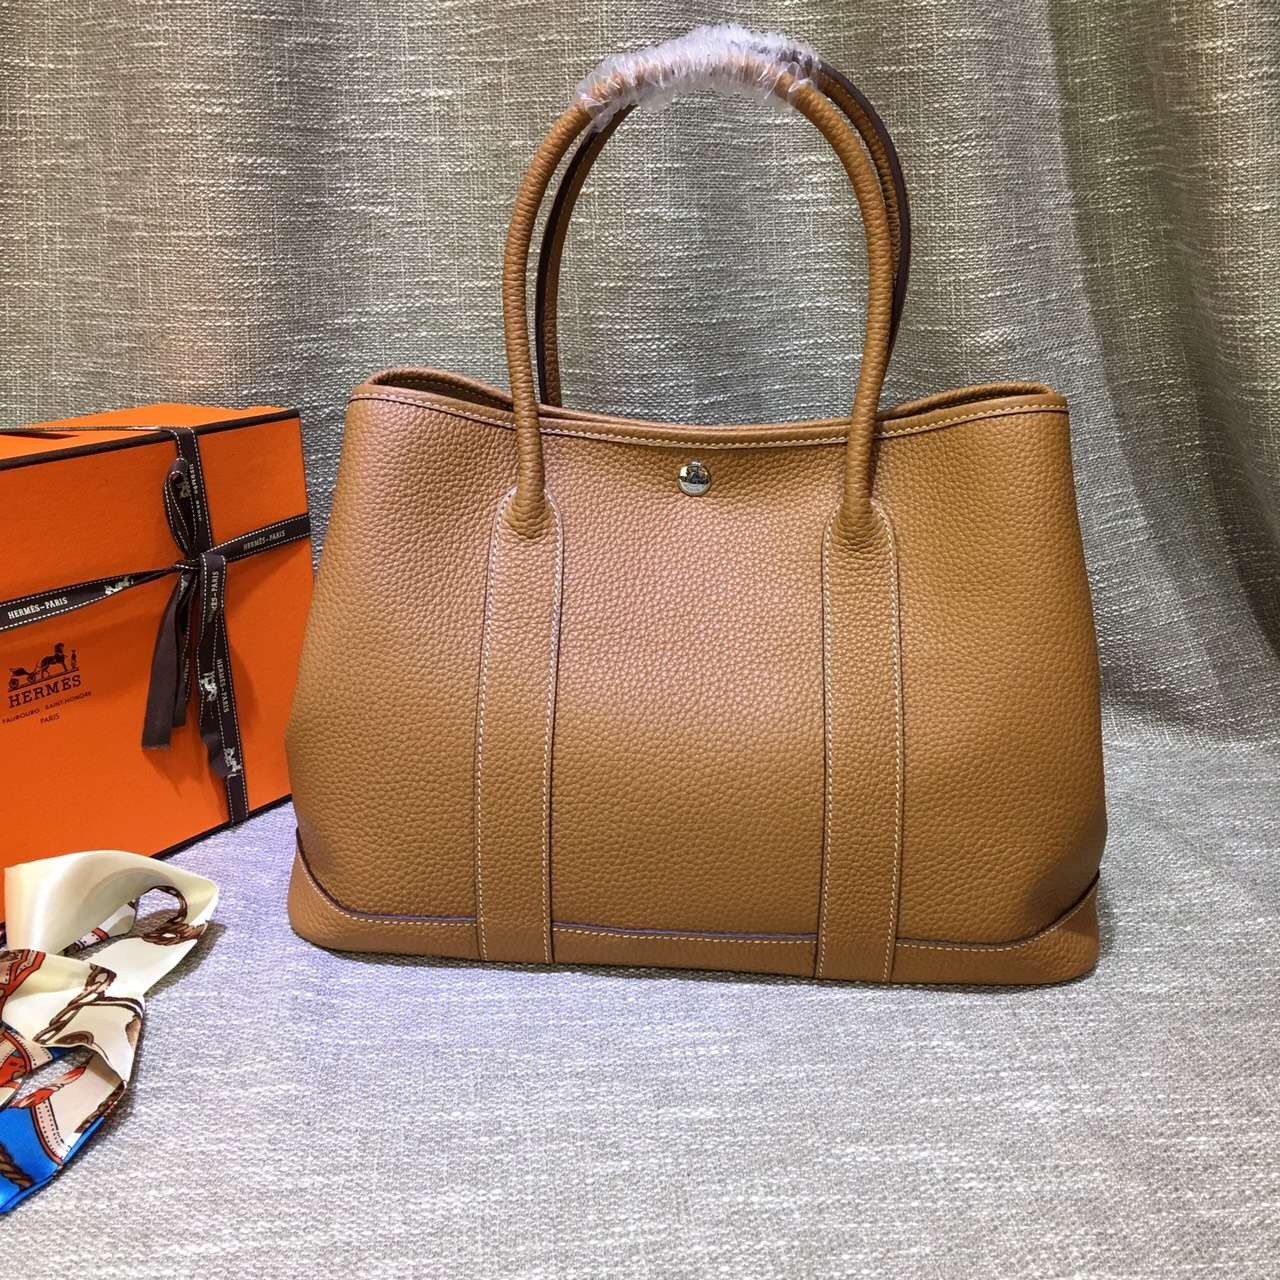 Hermes Garden Party Handbag Large 36cm Brown